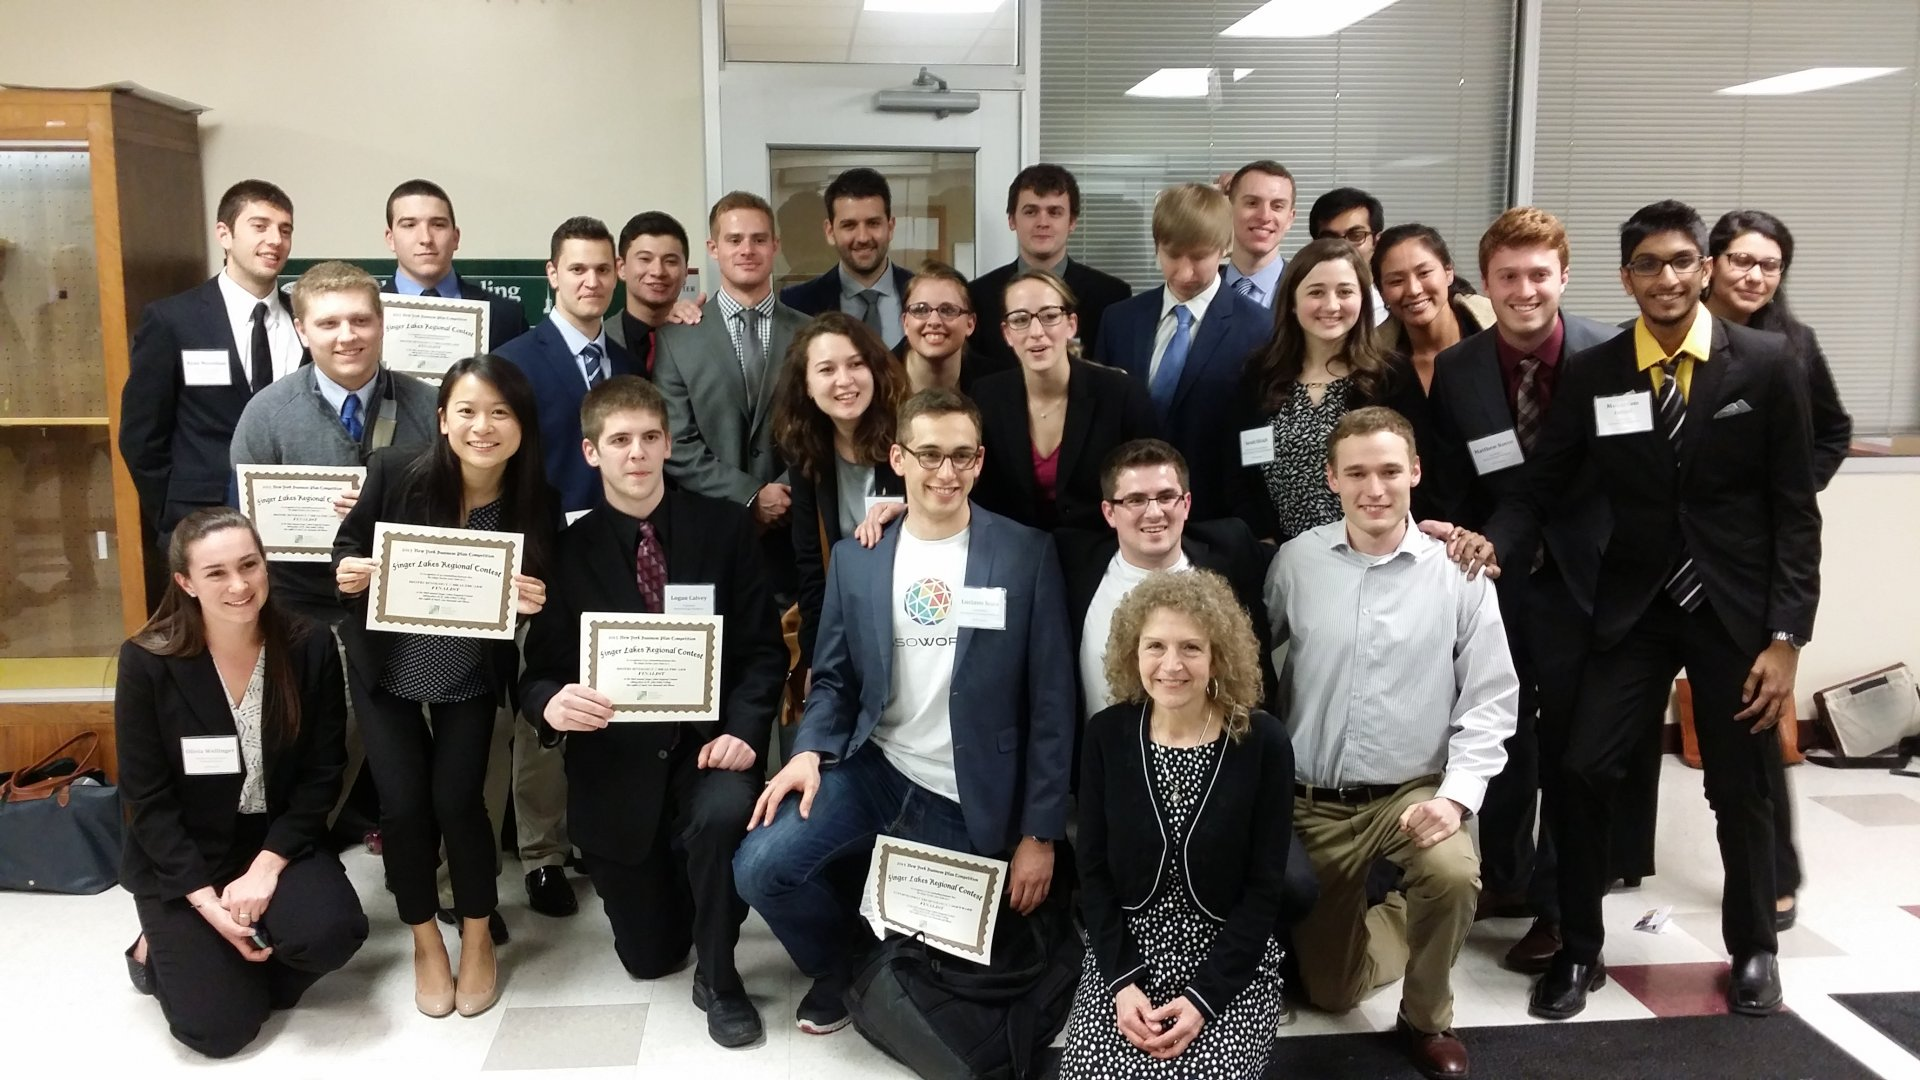 April 2015: NYBPC Regionals, hosted by Saint John Fisher College